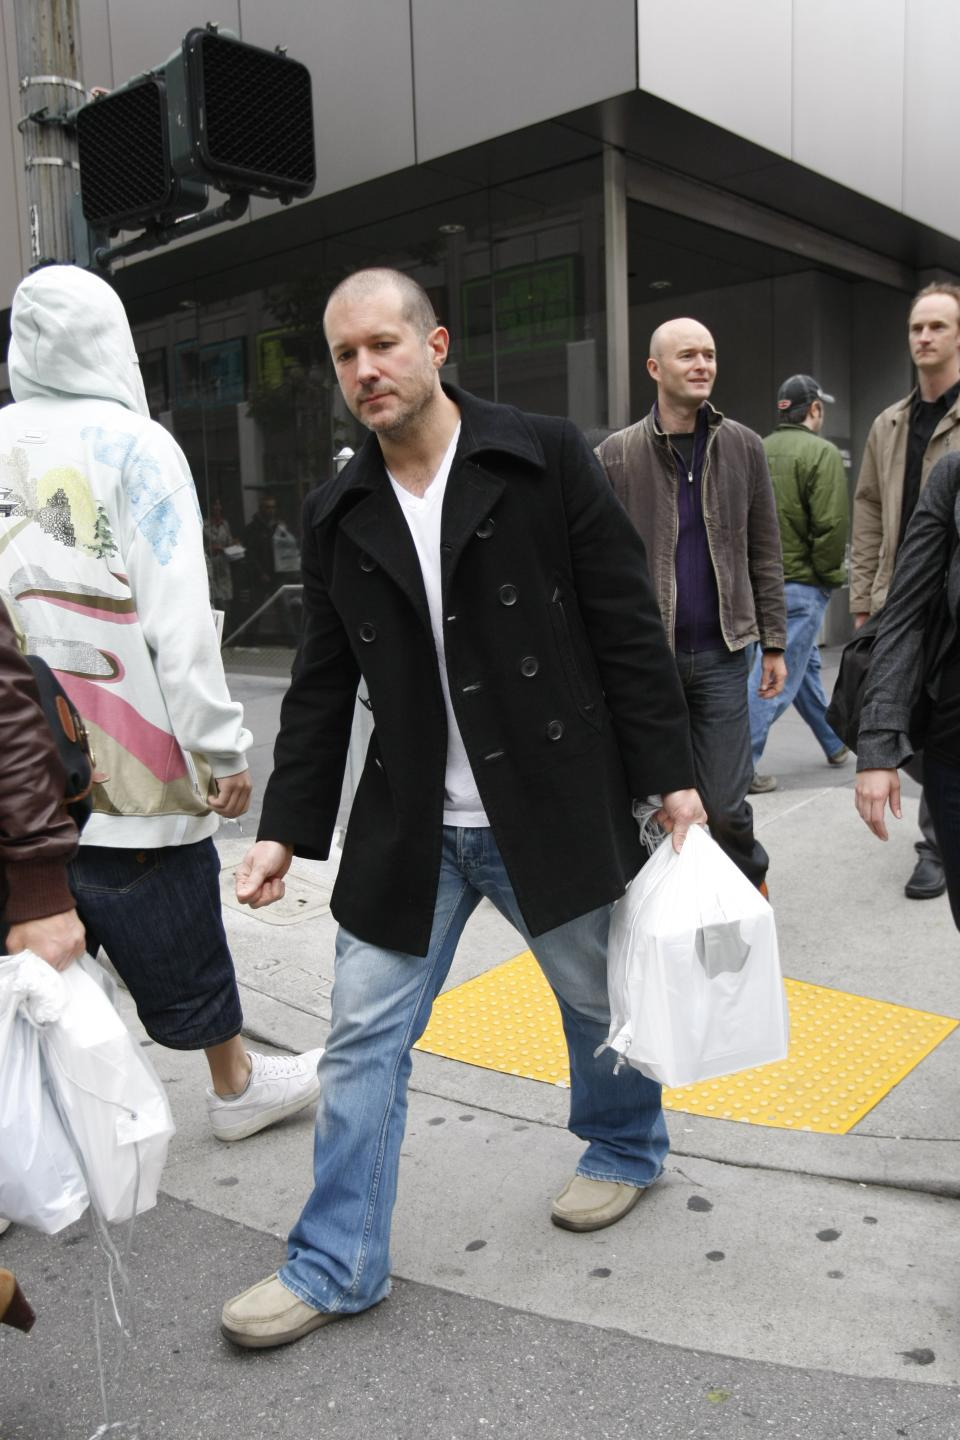 In this April 3, 2010 photo, shows Jonathan Ive, center, Apple senior vice president of Industrial Design, leaving an Apple store in San Francisco on the first day of Apple iPad sales in San Francisco. (AP Photo/Paul Sakuma)